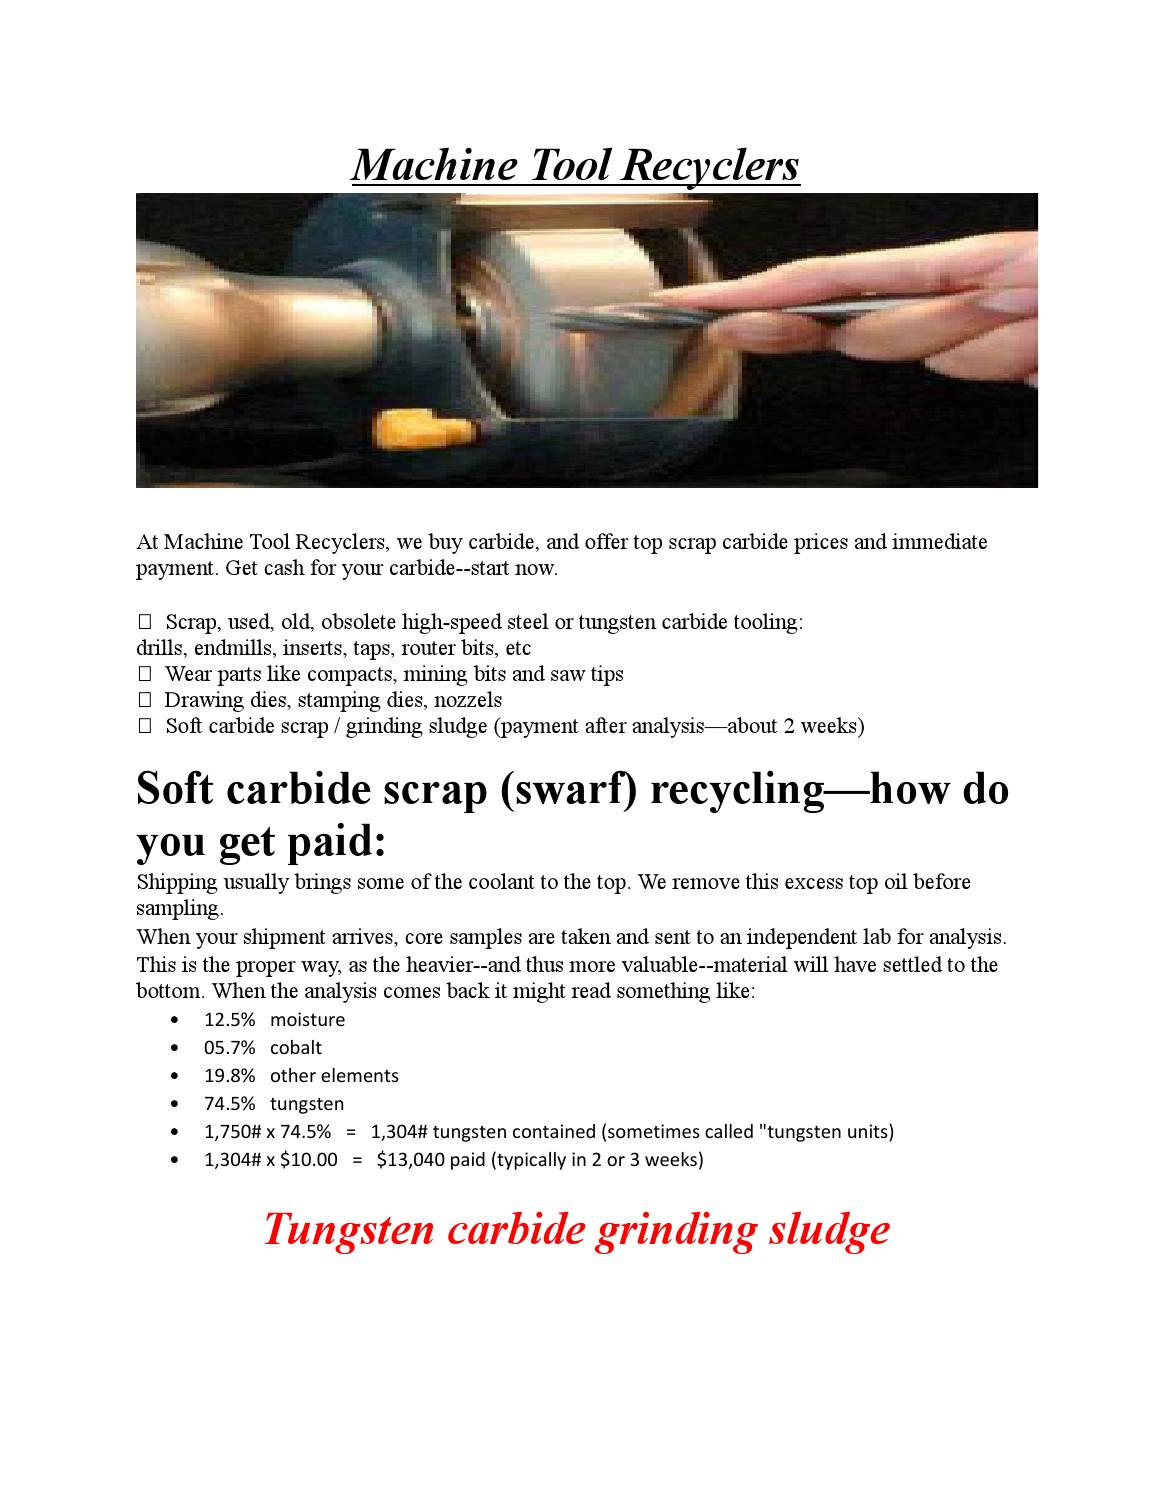 Tungsten carbide recycling by machinetoolrecyclers - issuu